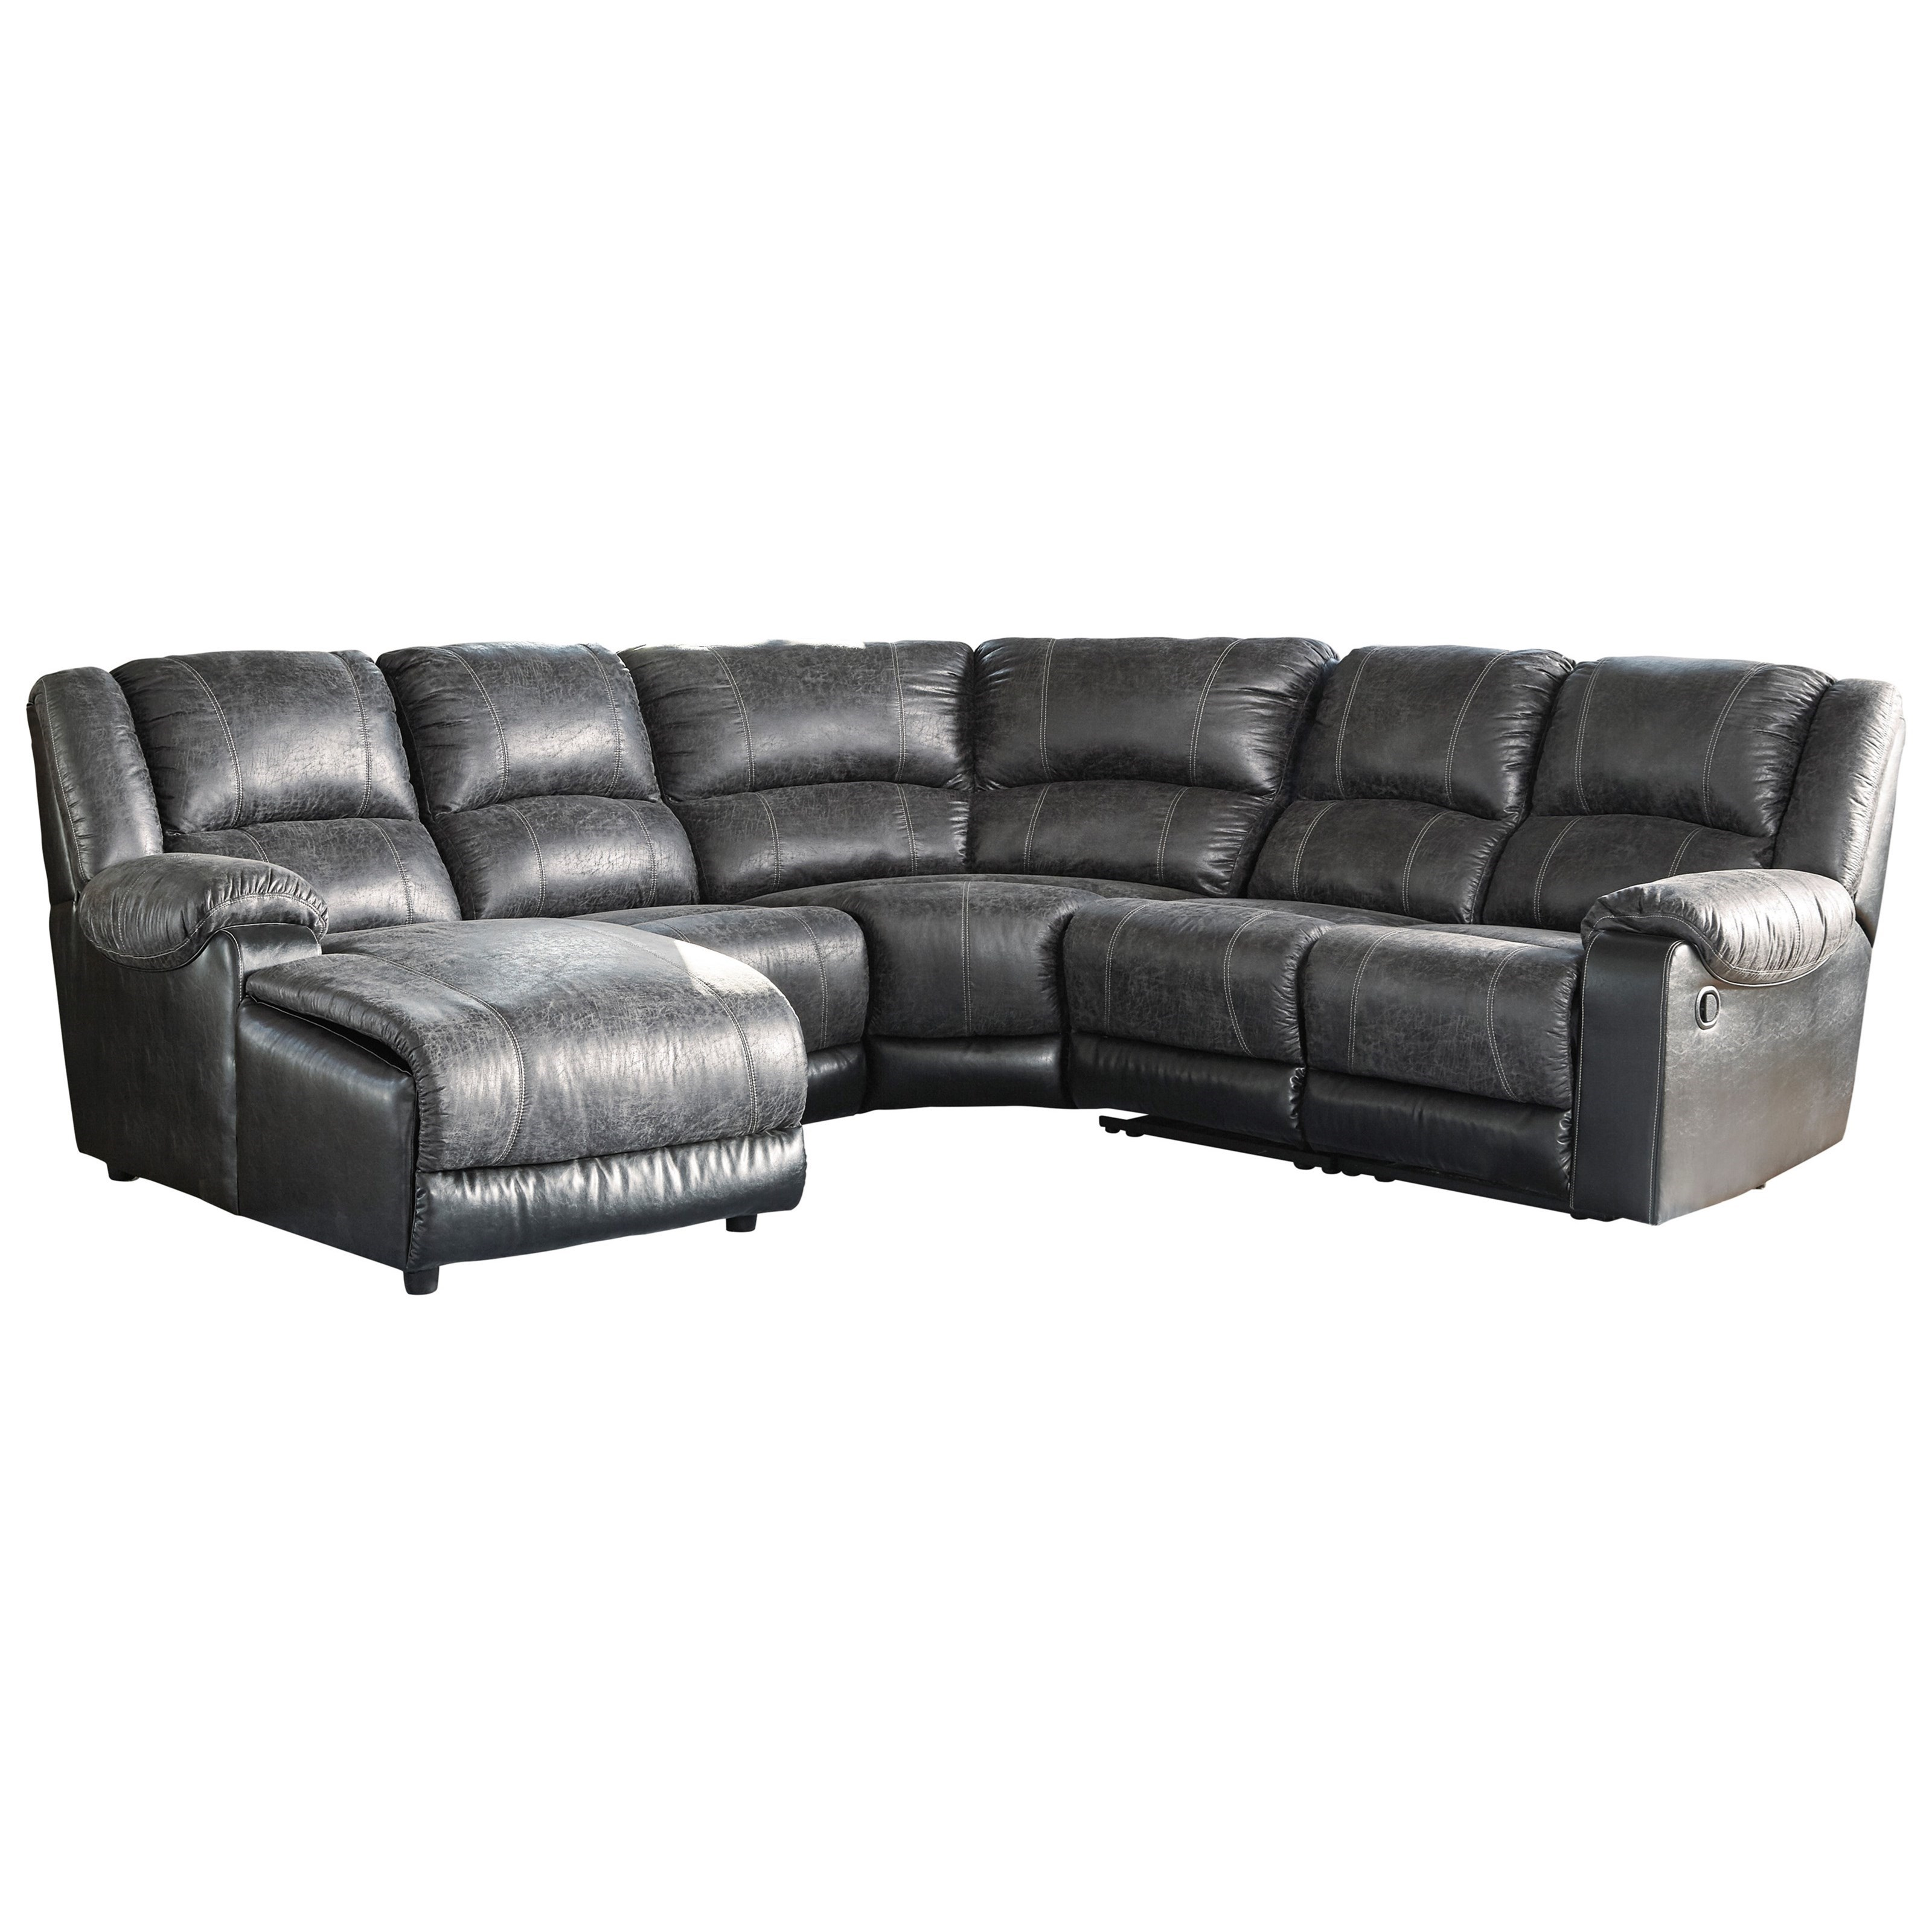 Leather Reclining Sectional Hardy Bonded Leather Reclining